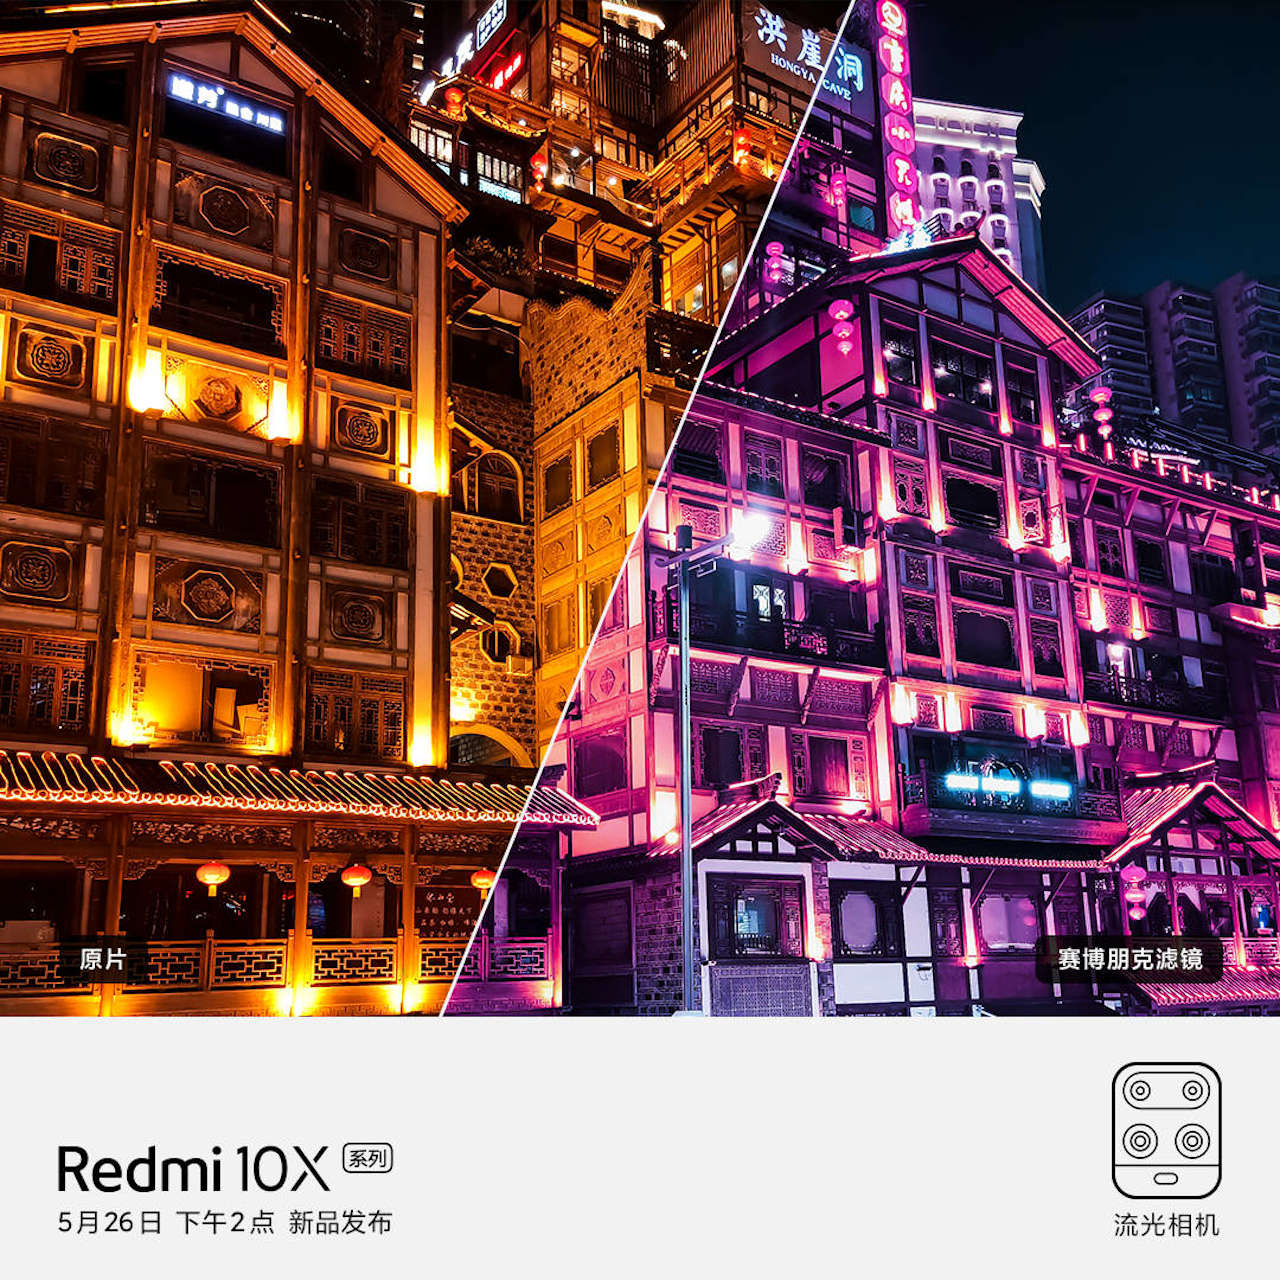 redmi 10x sample